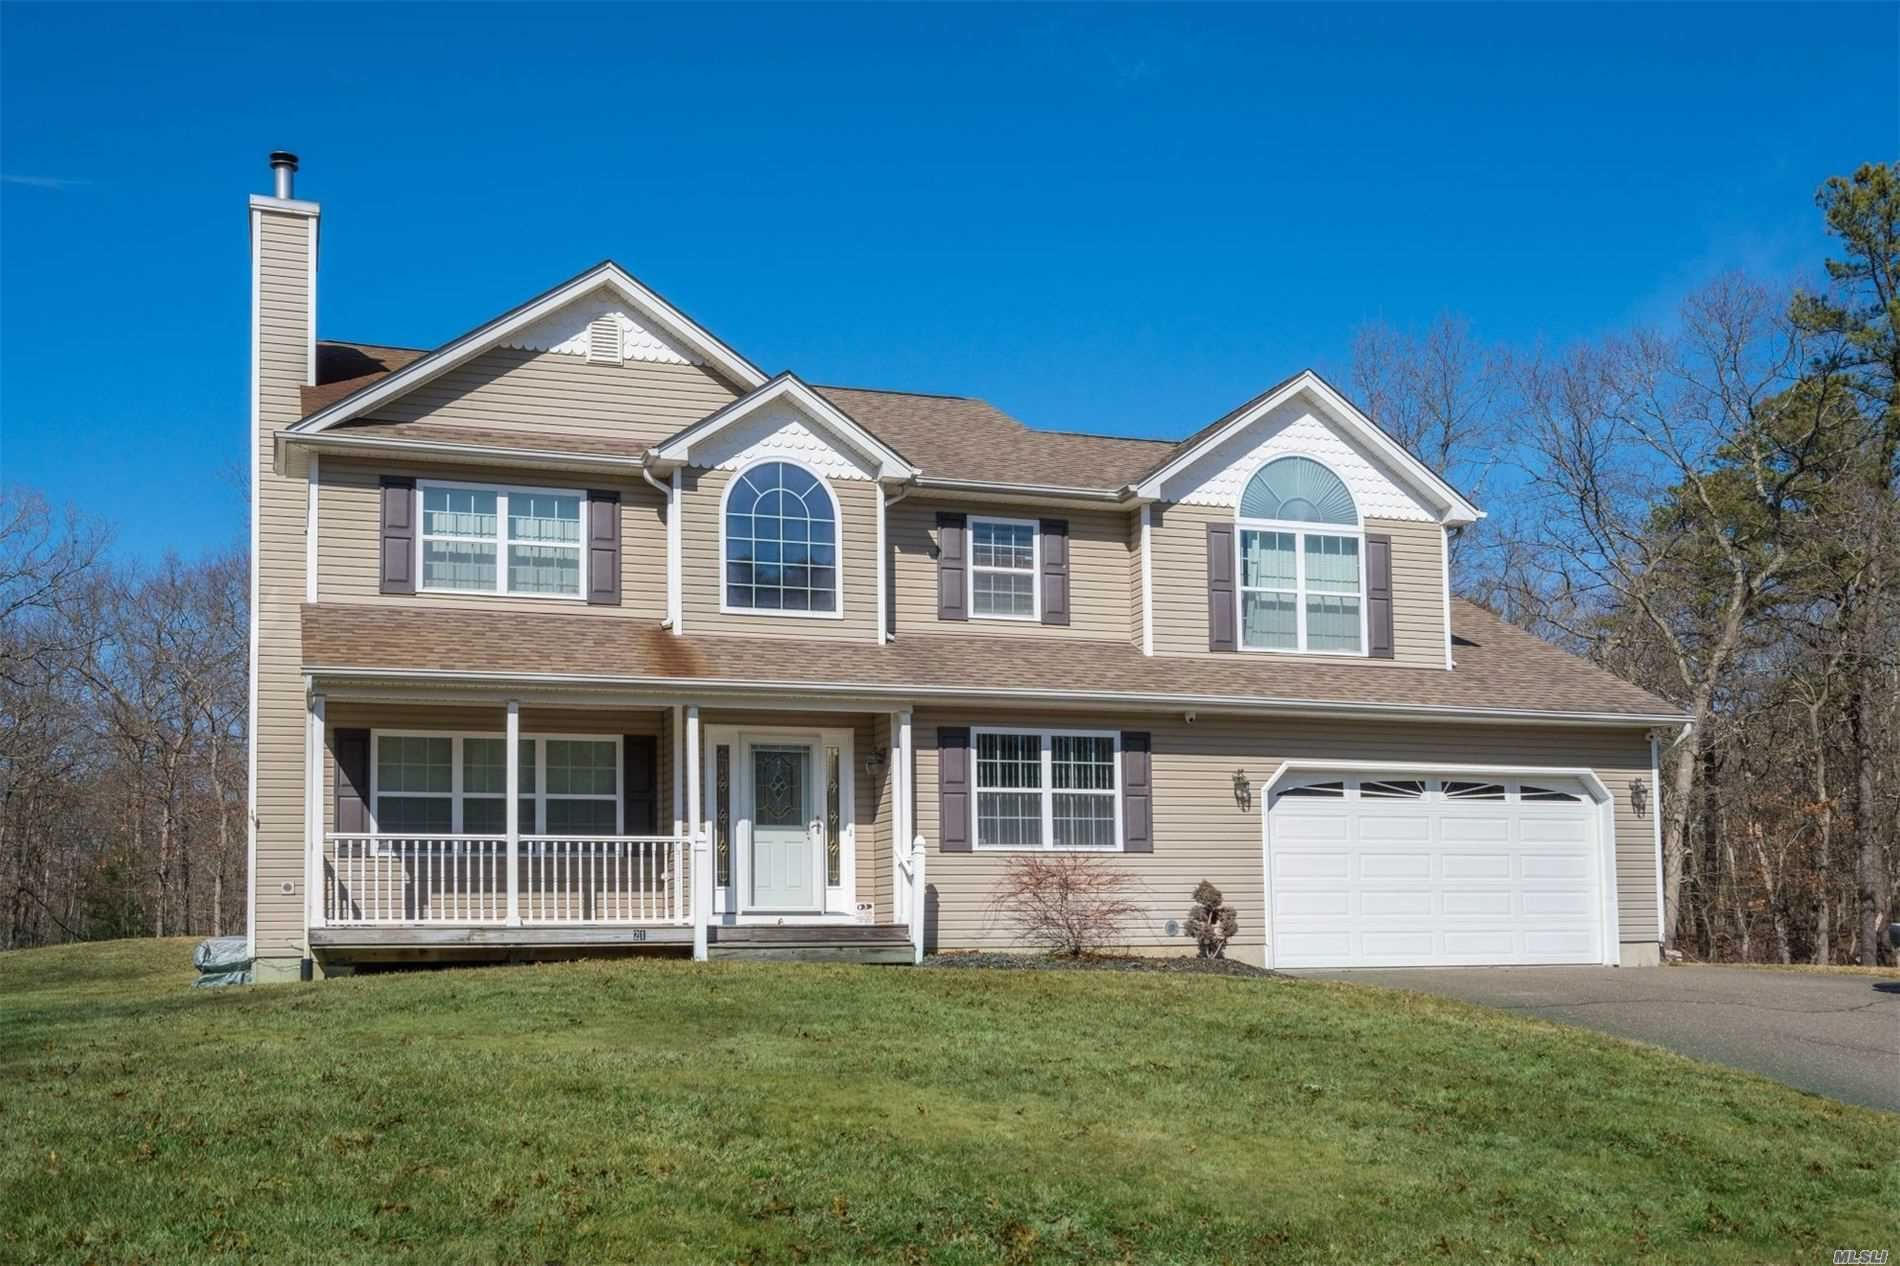 21 Mill Lane, Medford, NY 11763 - MLS#: 3207042